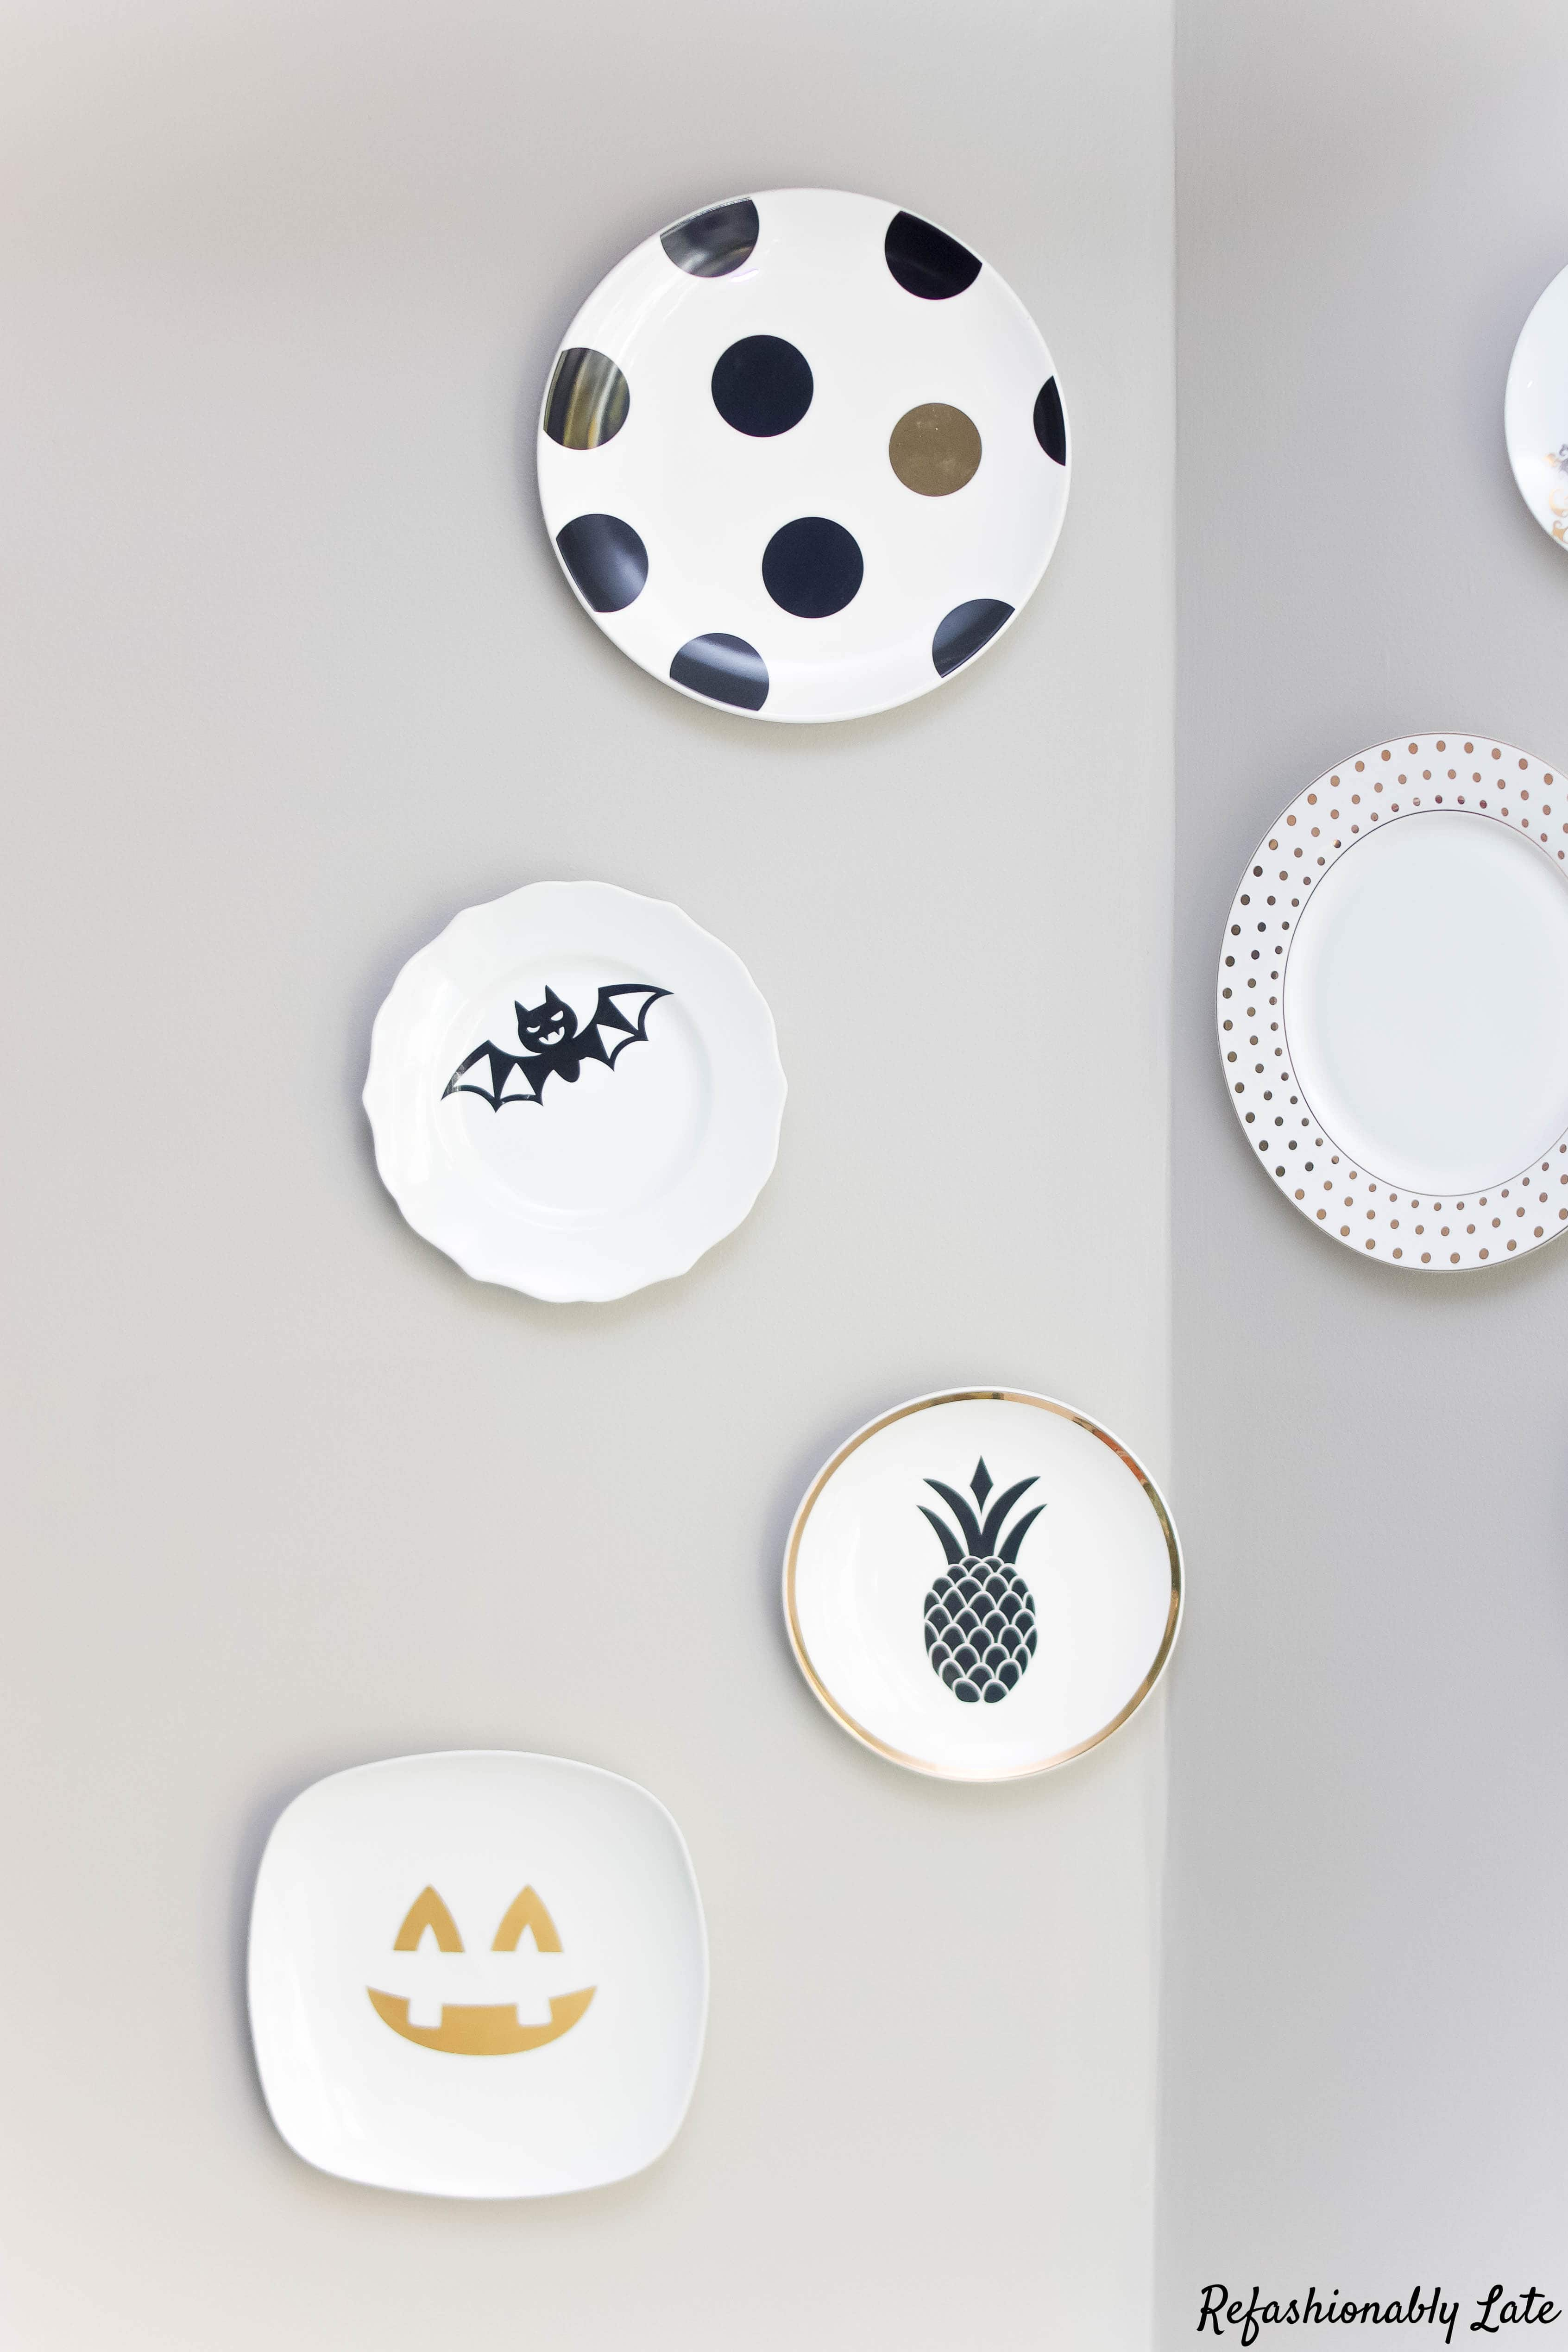 plates hung on a grey wall with decorative Halloween decals on the front